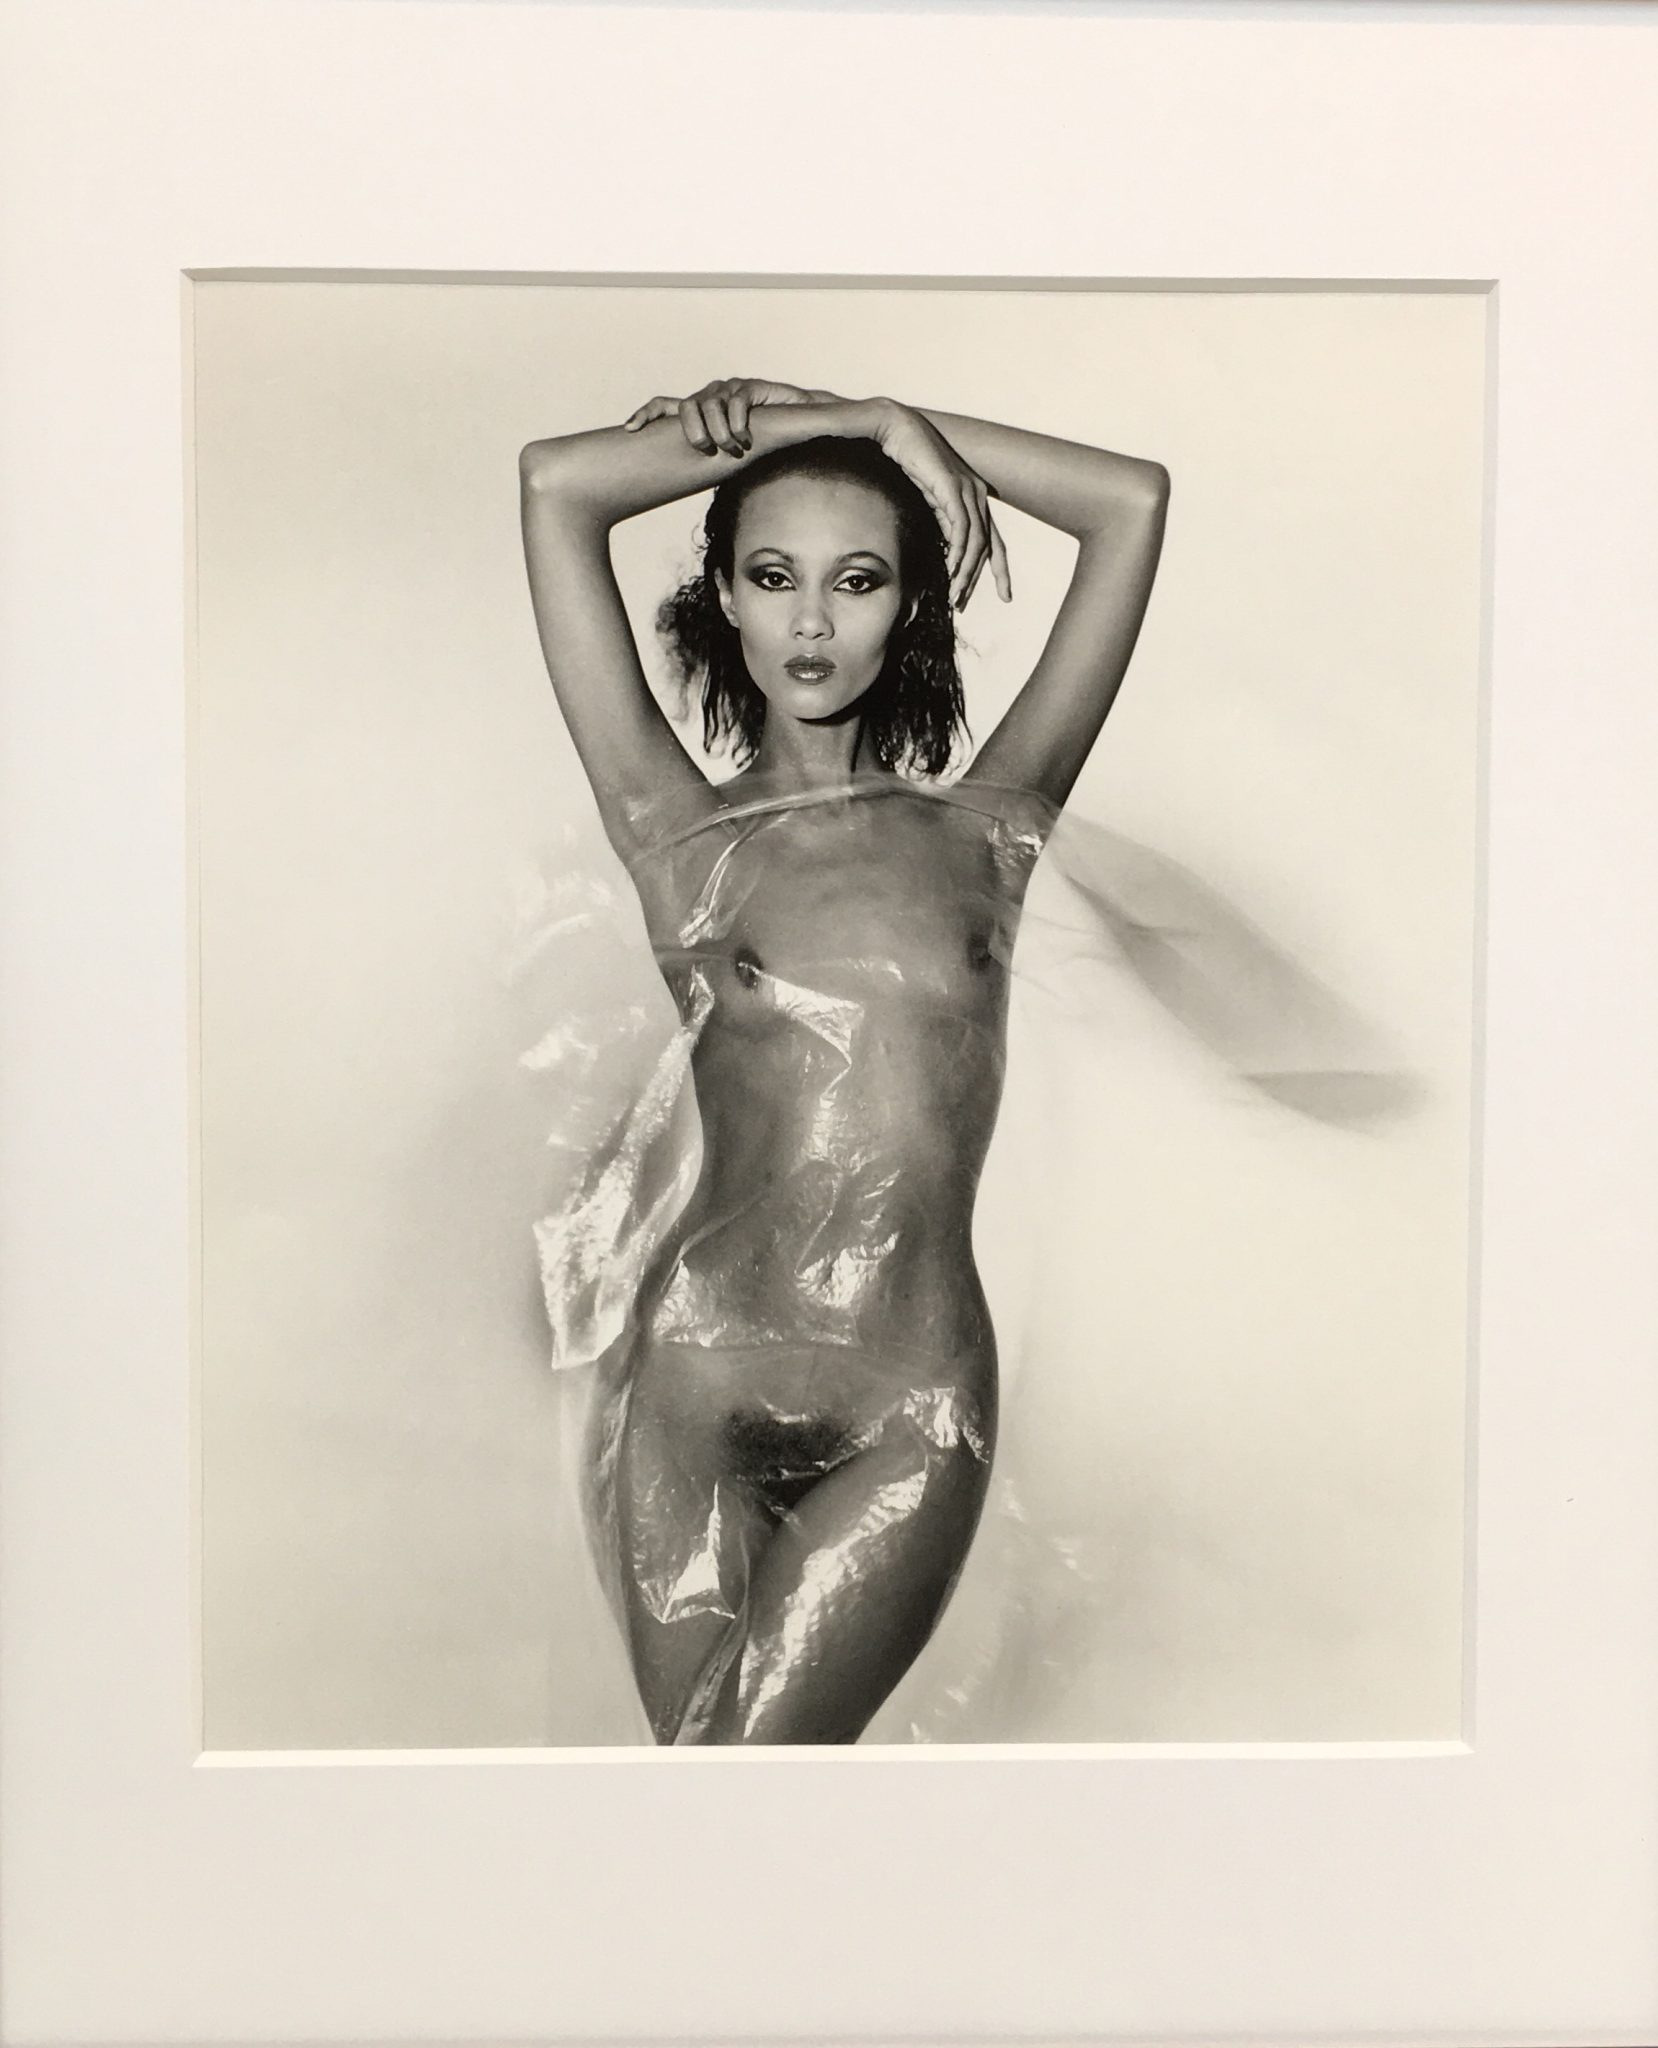 29 arts in progress - Gian Paolo Barbieri - Iman, Parigi, 1979